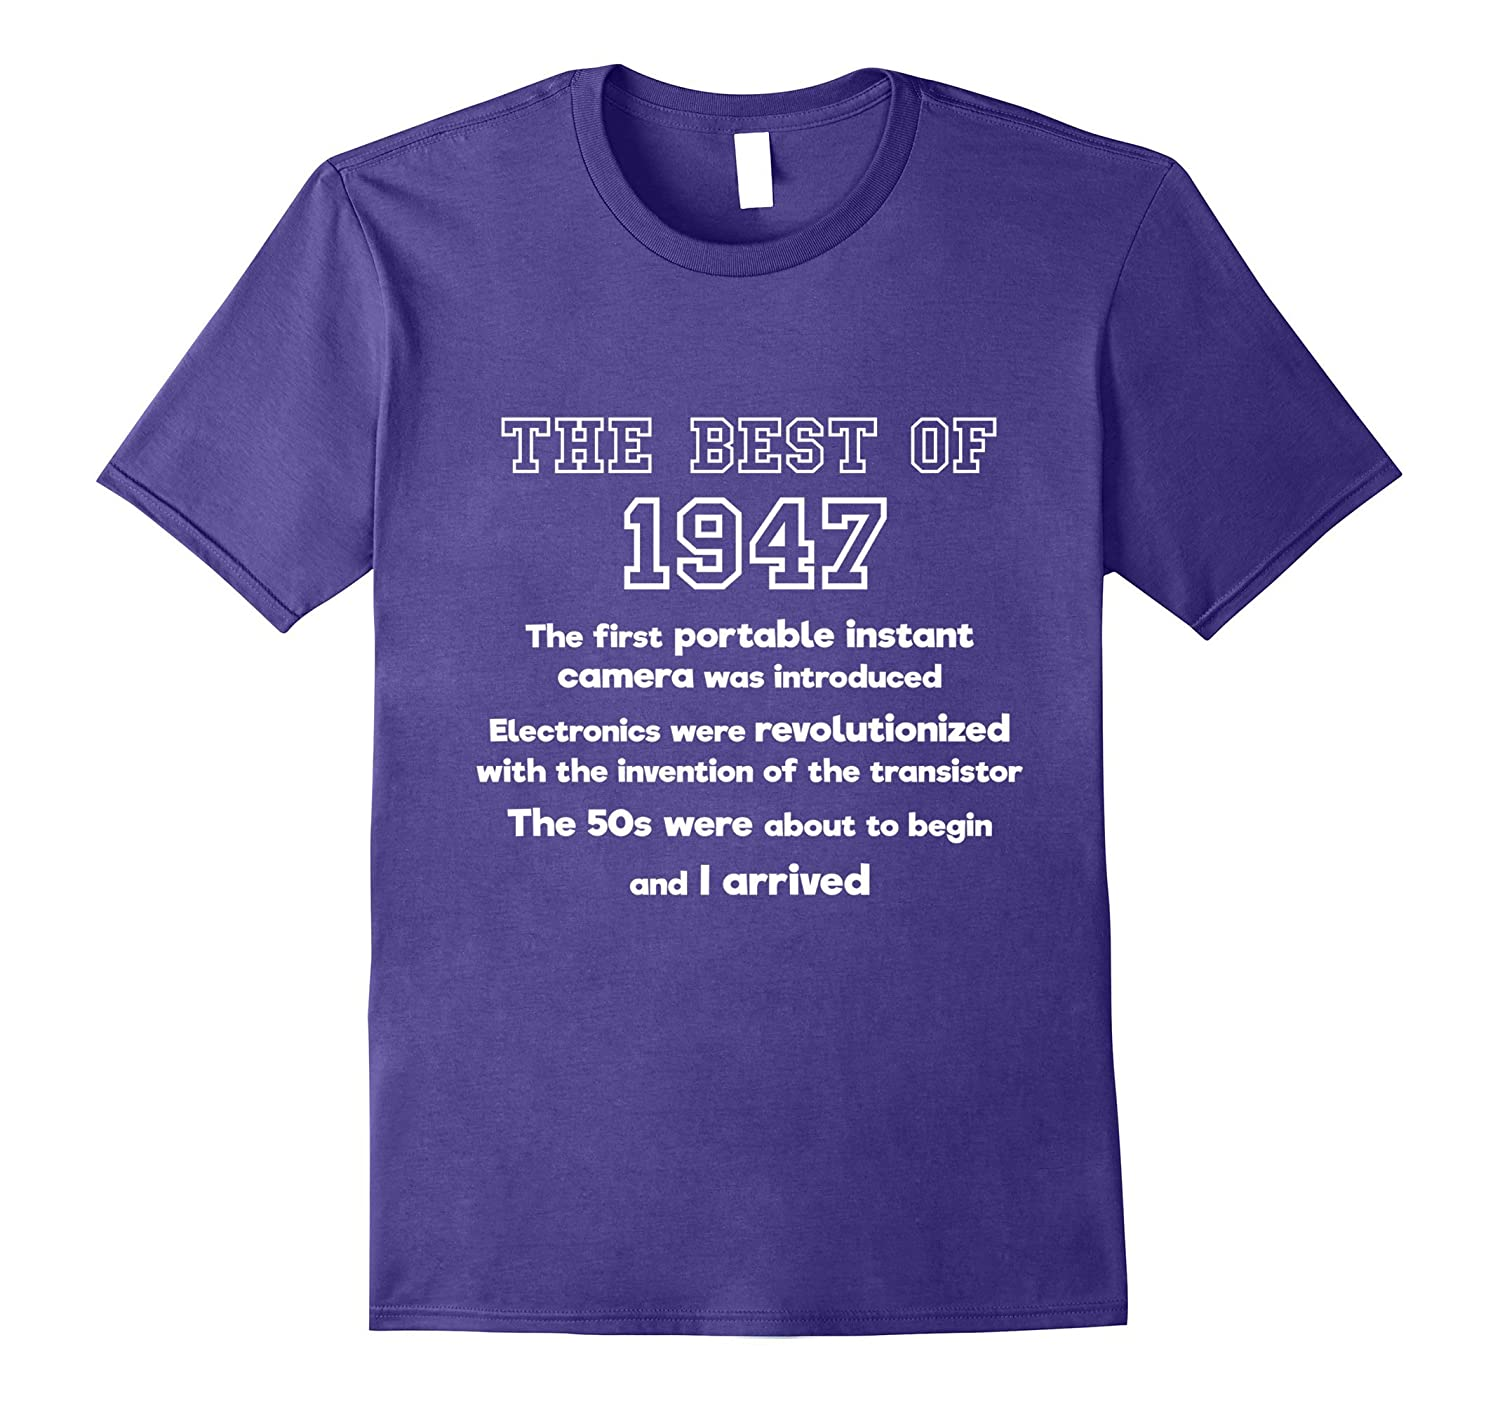 1947 70th birthday T shirt gift for 70 year old men / women-TH